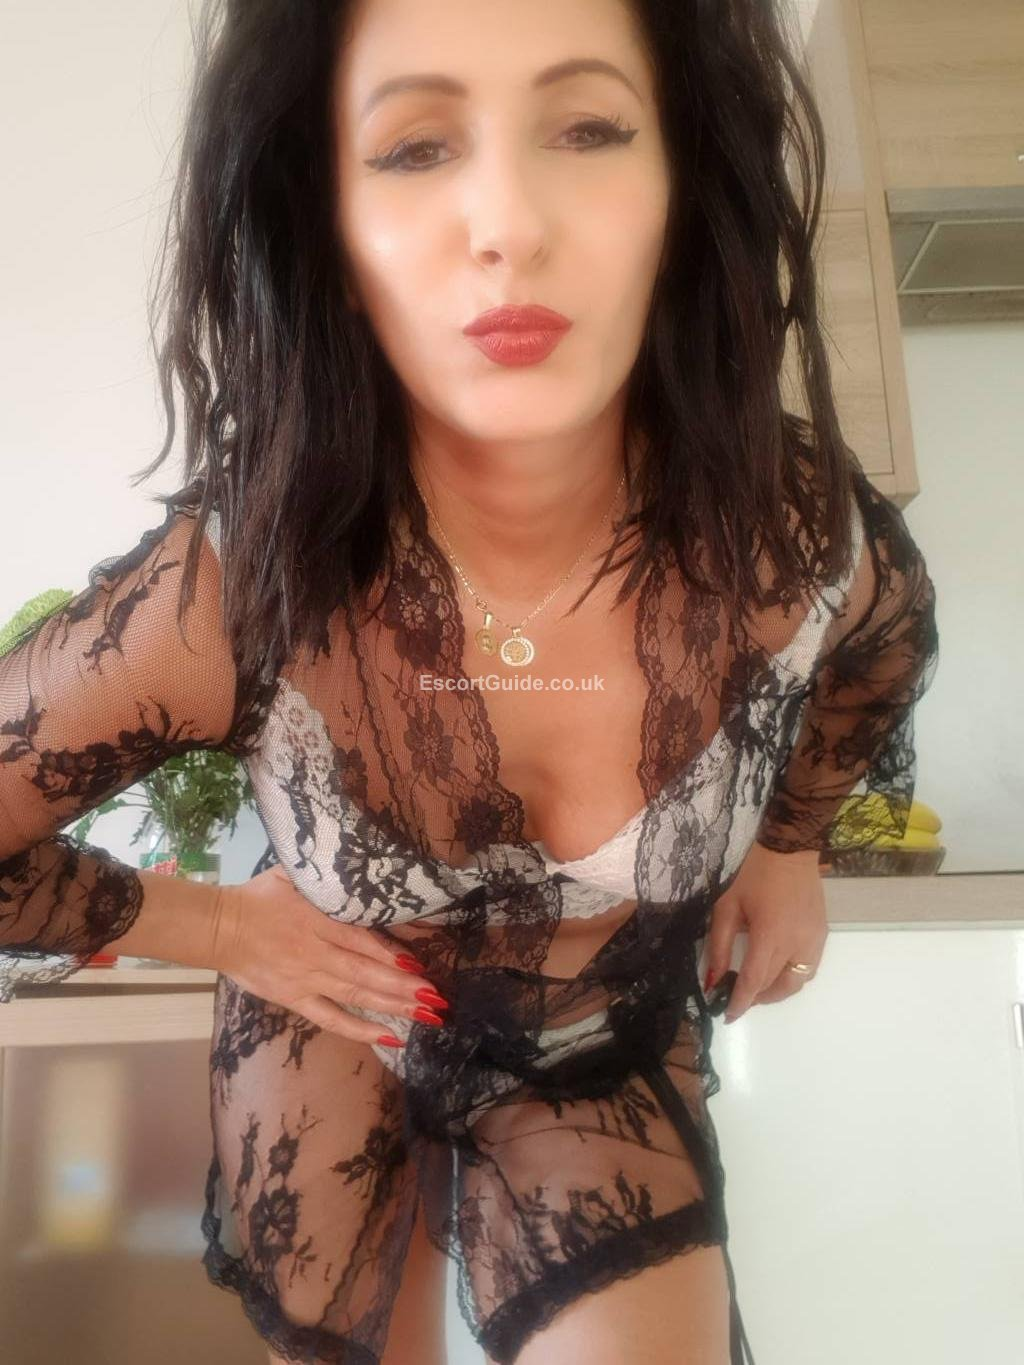 Escort ipswich sex in more modest